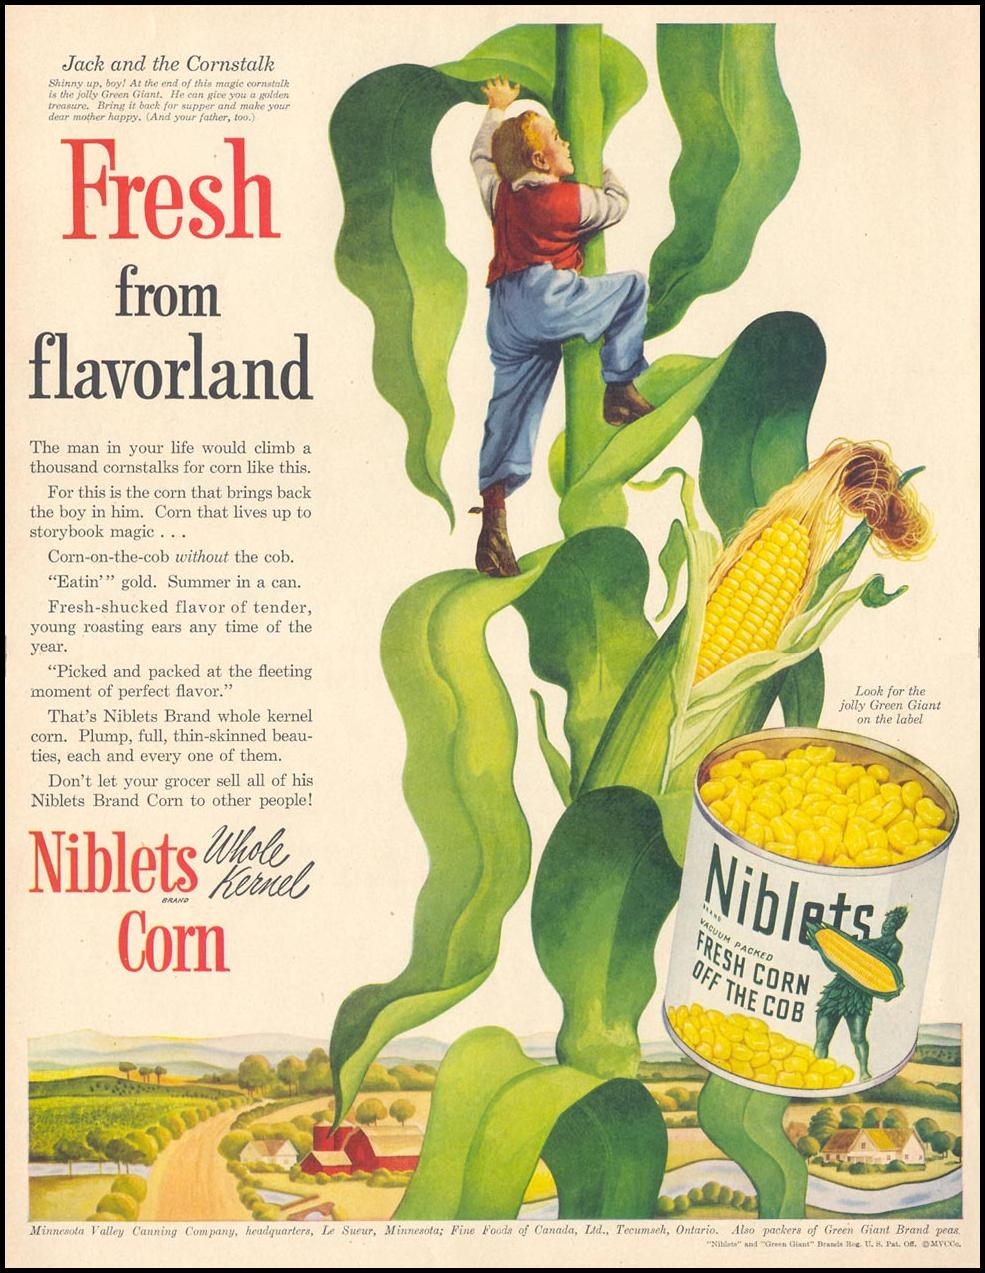 GREEN GIANT NIBLETS WHOLE KERNEL CORN LIFE 04/17/1950 p. 80